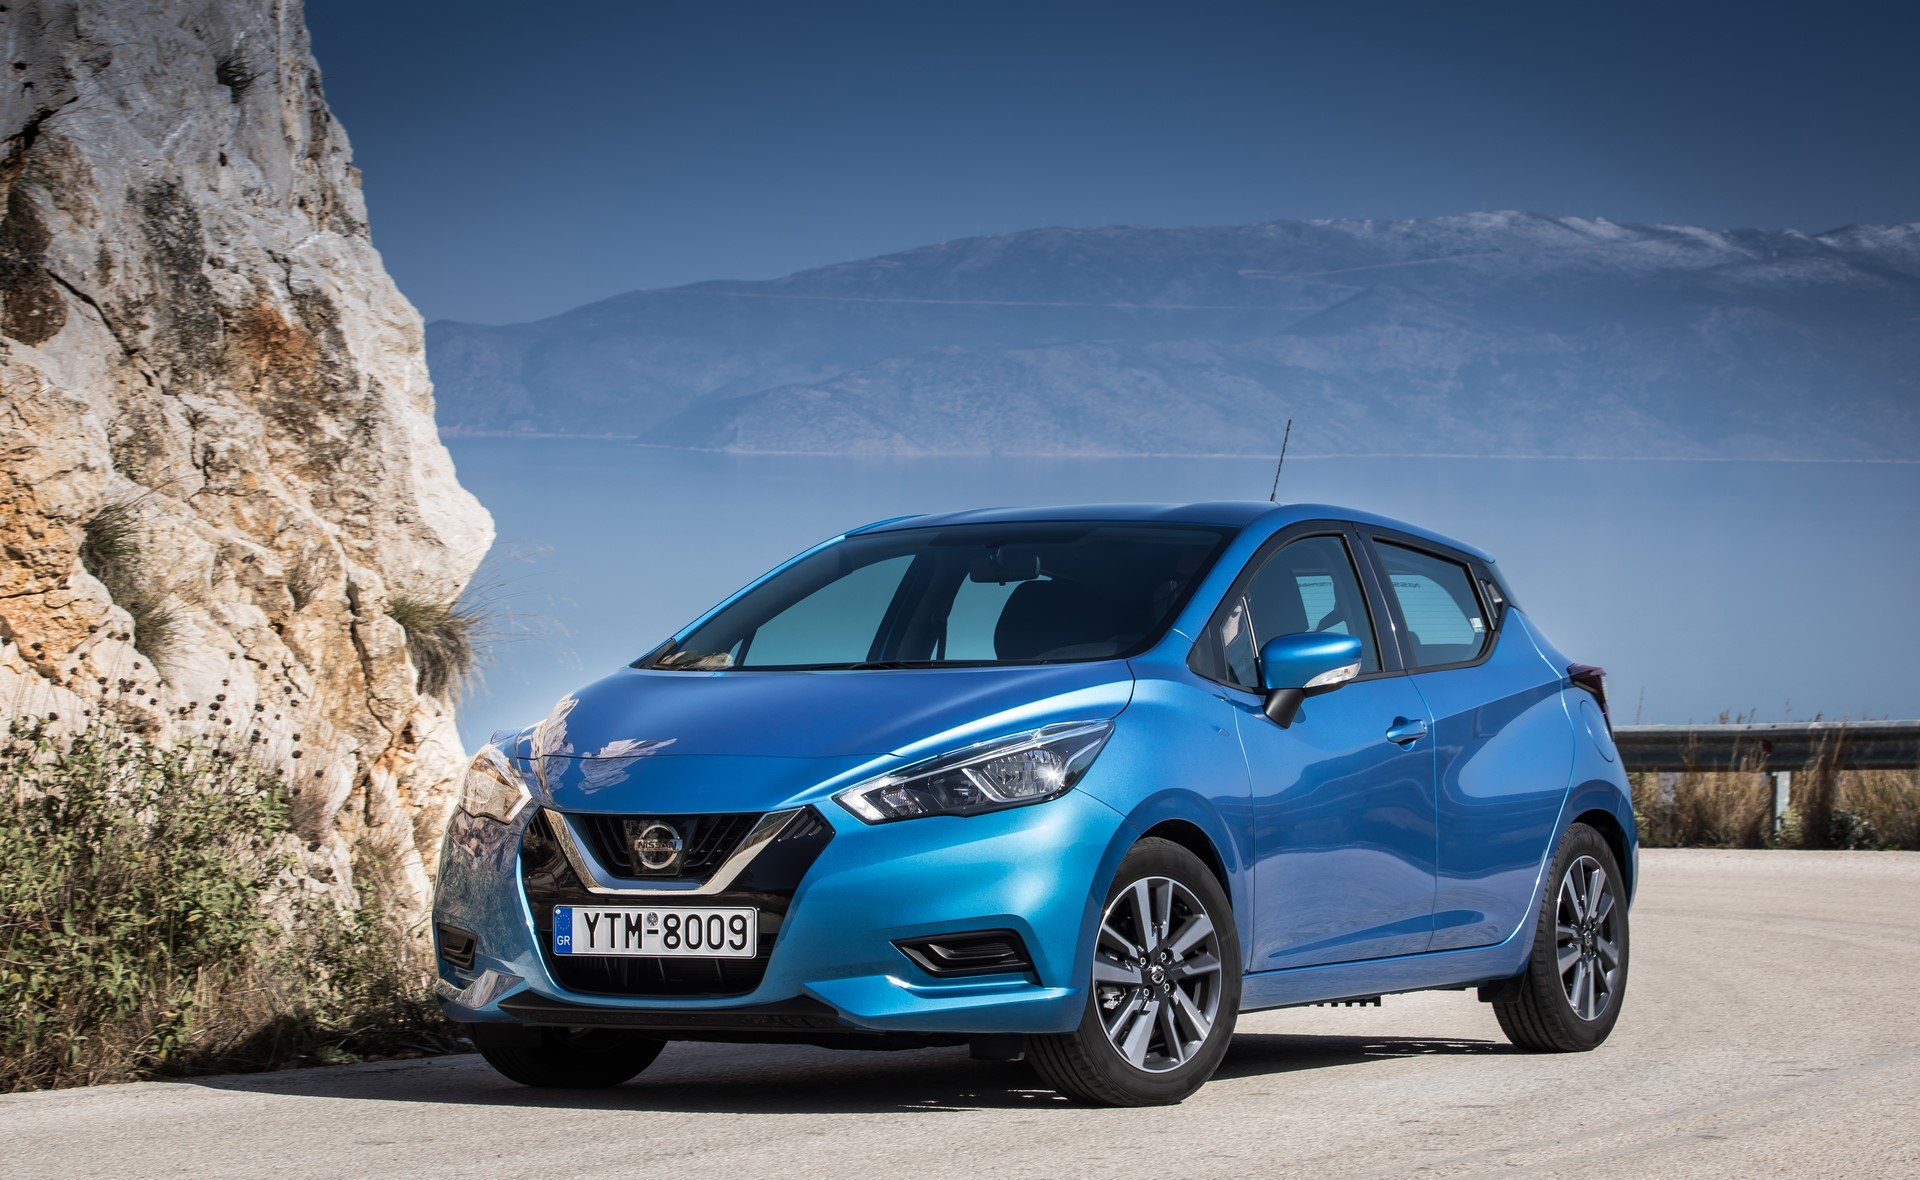 Nissan Micra 2019 Greek (36)